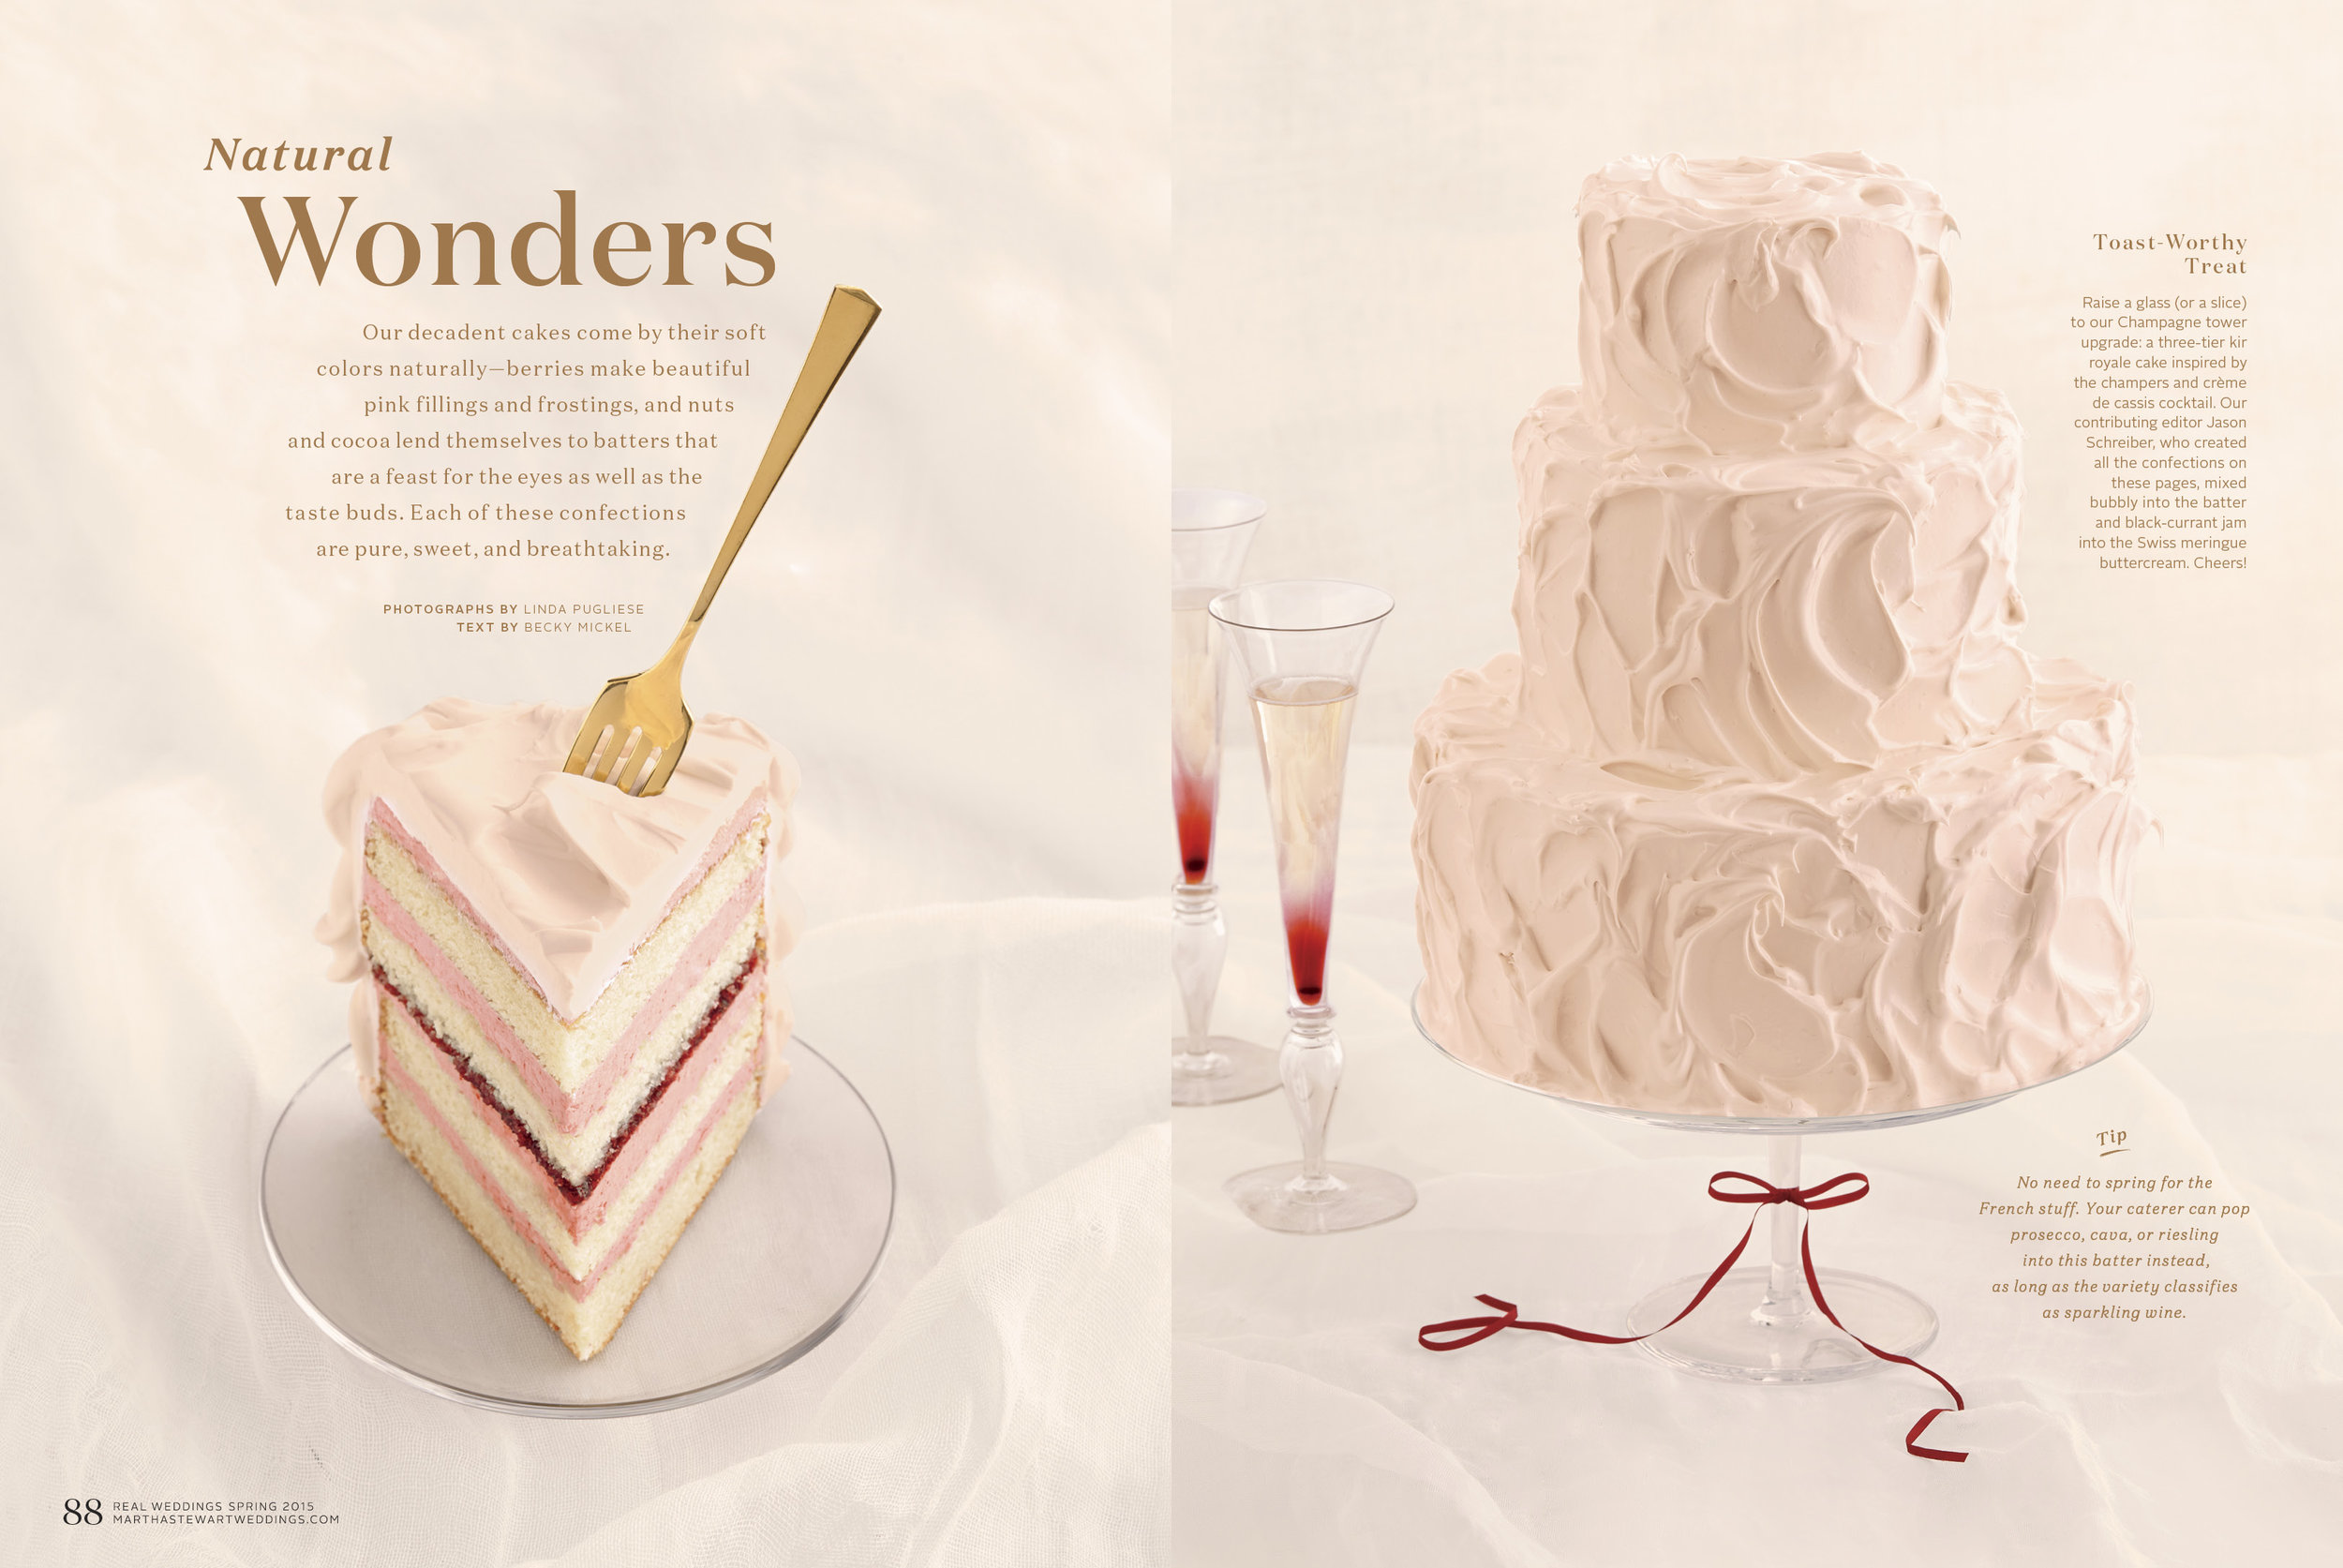 Kir Royale Cake. Photo by Linda Pugliese for Martha Stewart Weddings